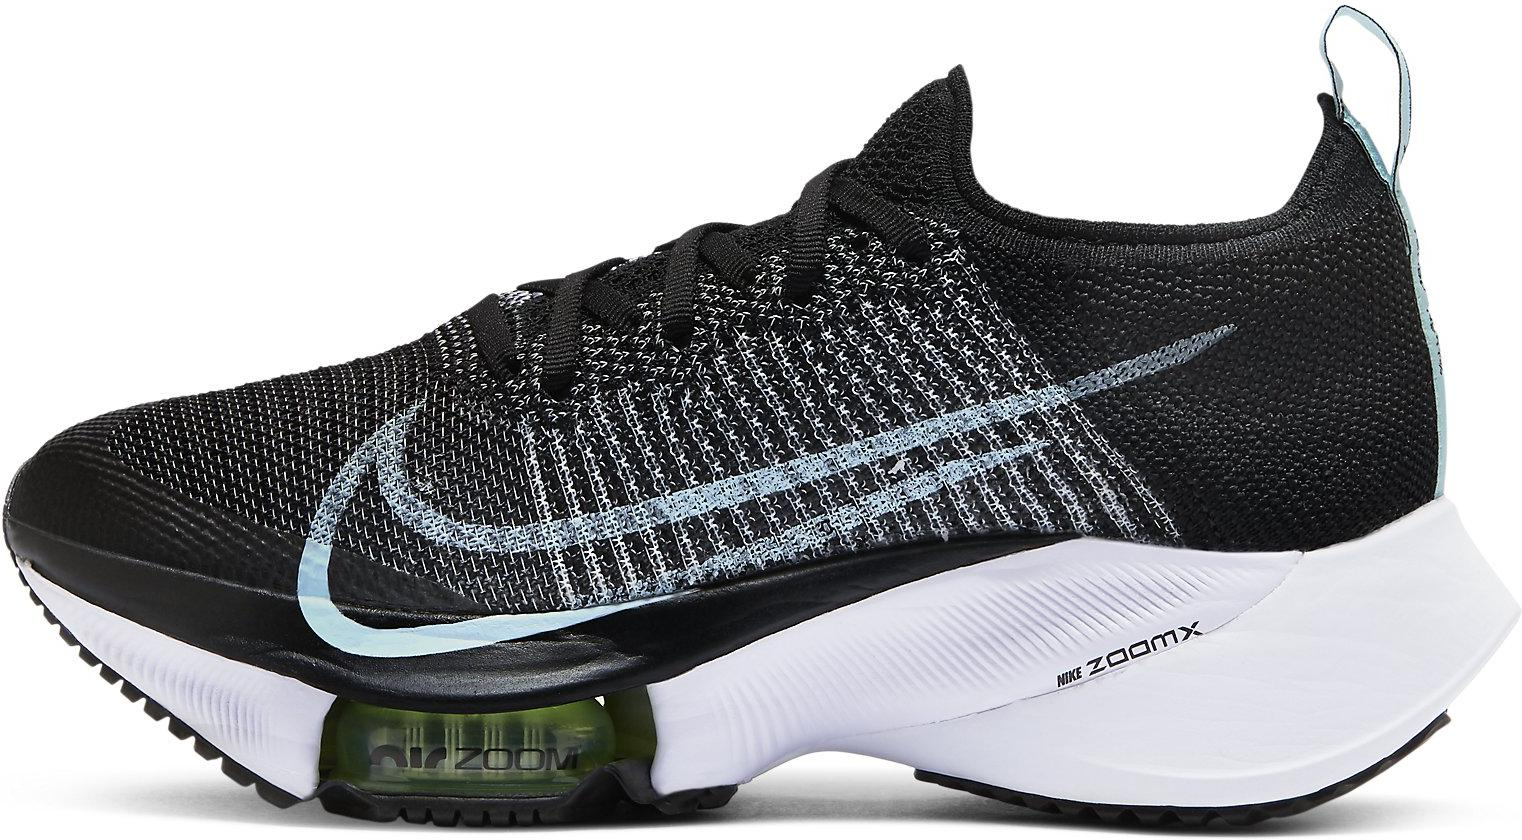 Chaussures de running Nike Air Zoom Tempo NEXT%